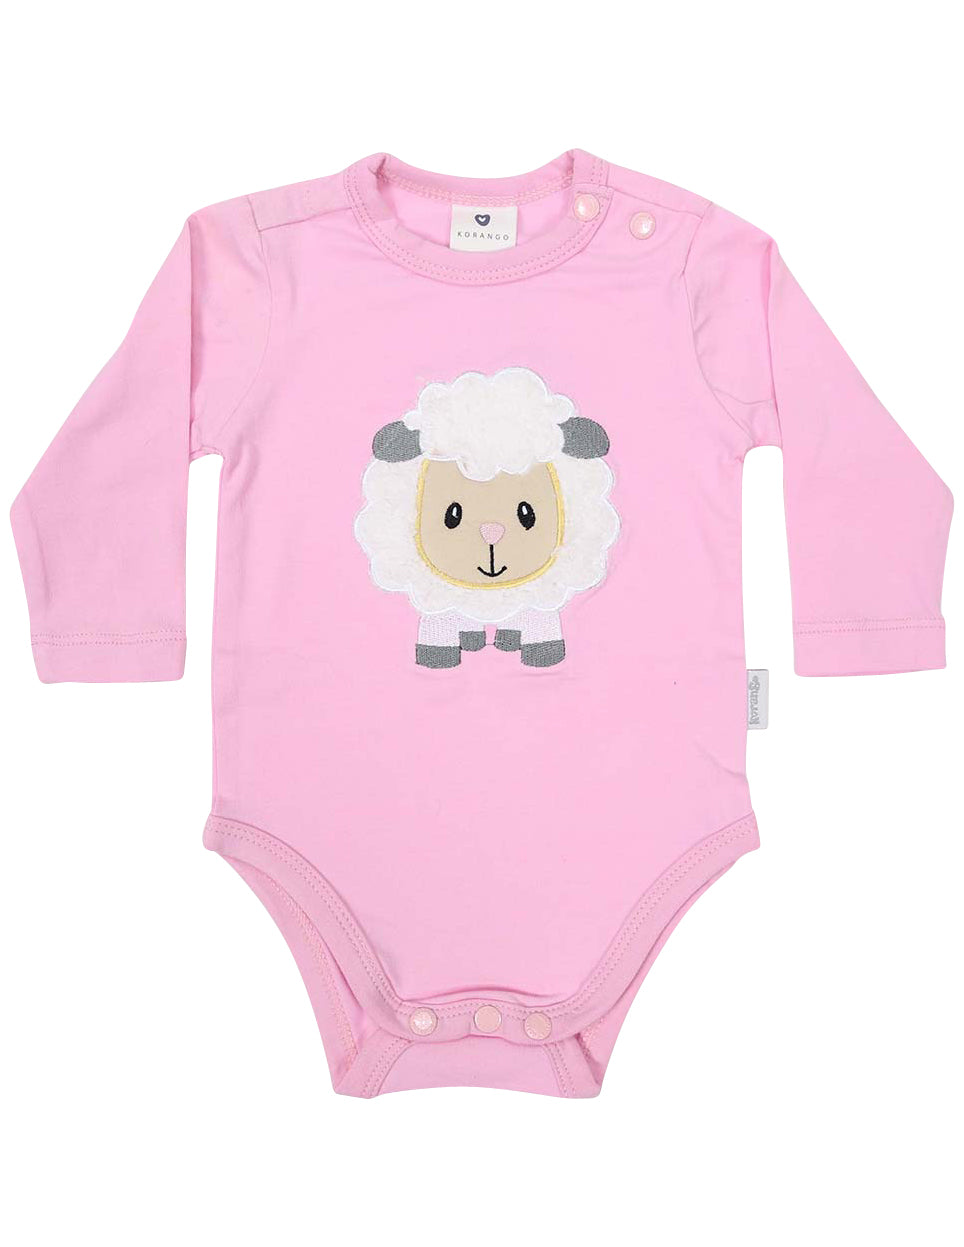 KORANGO Baa Baa White Sheep Bodysuit with Applique in Pink